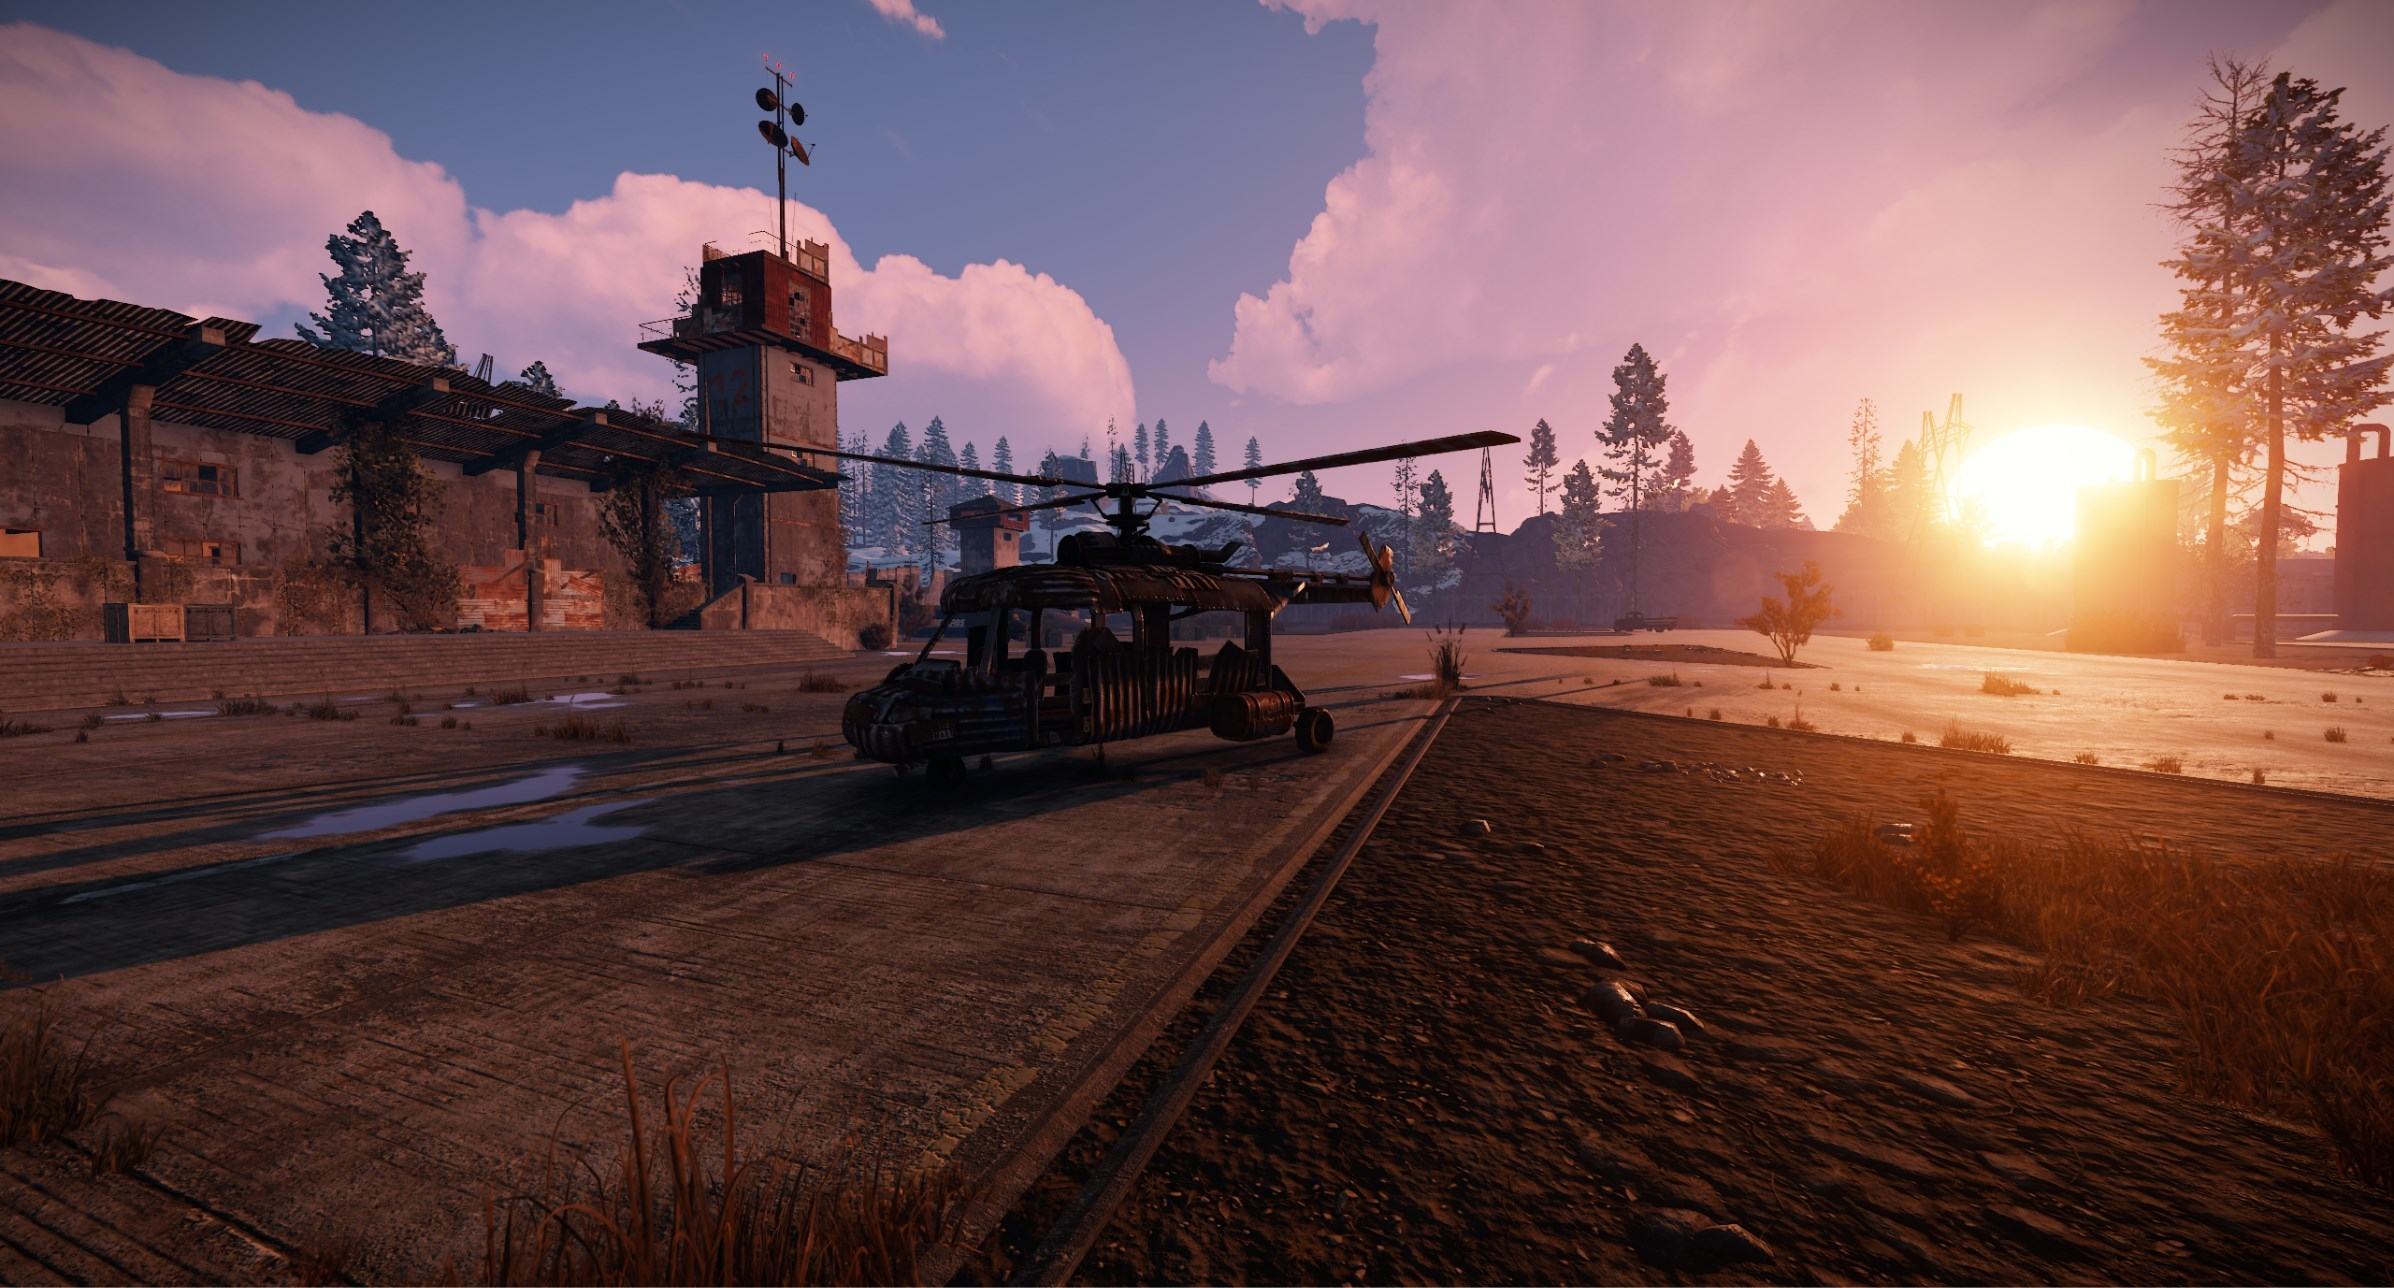 Rust update for September 5, 2019 · Transport Helicopter